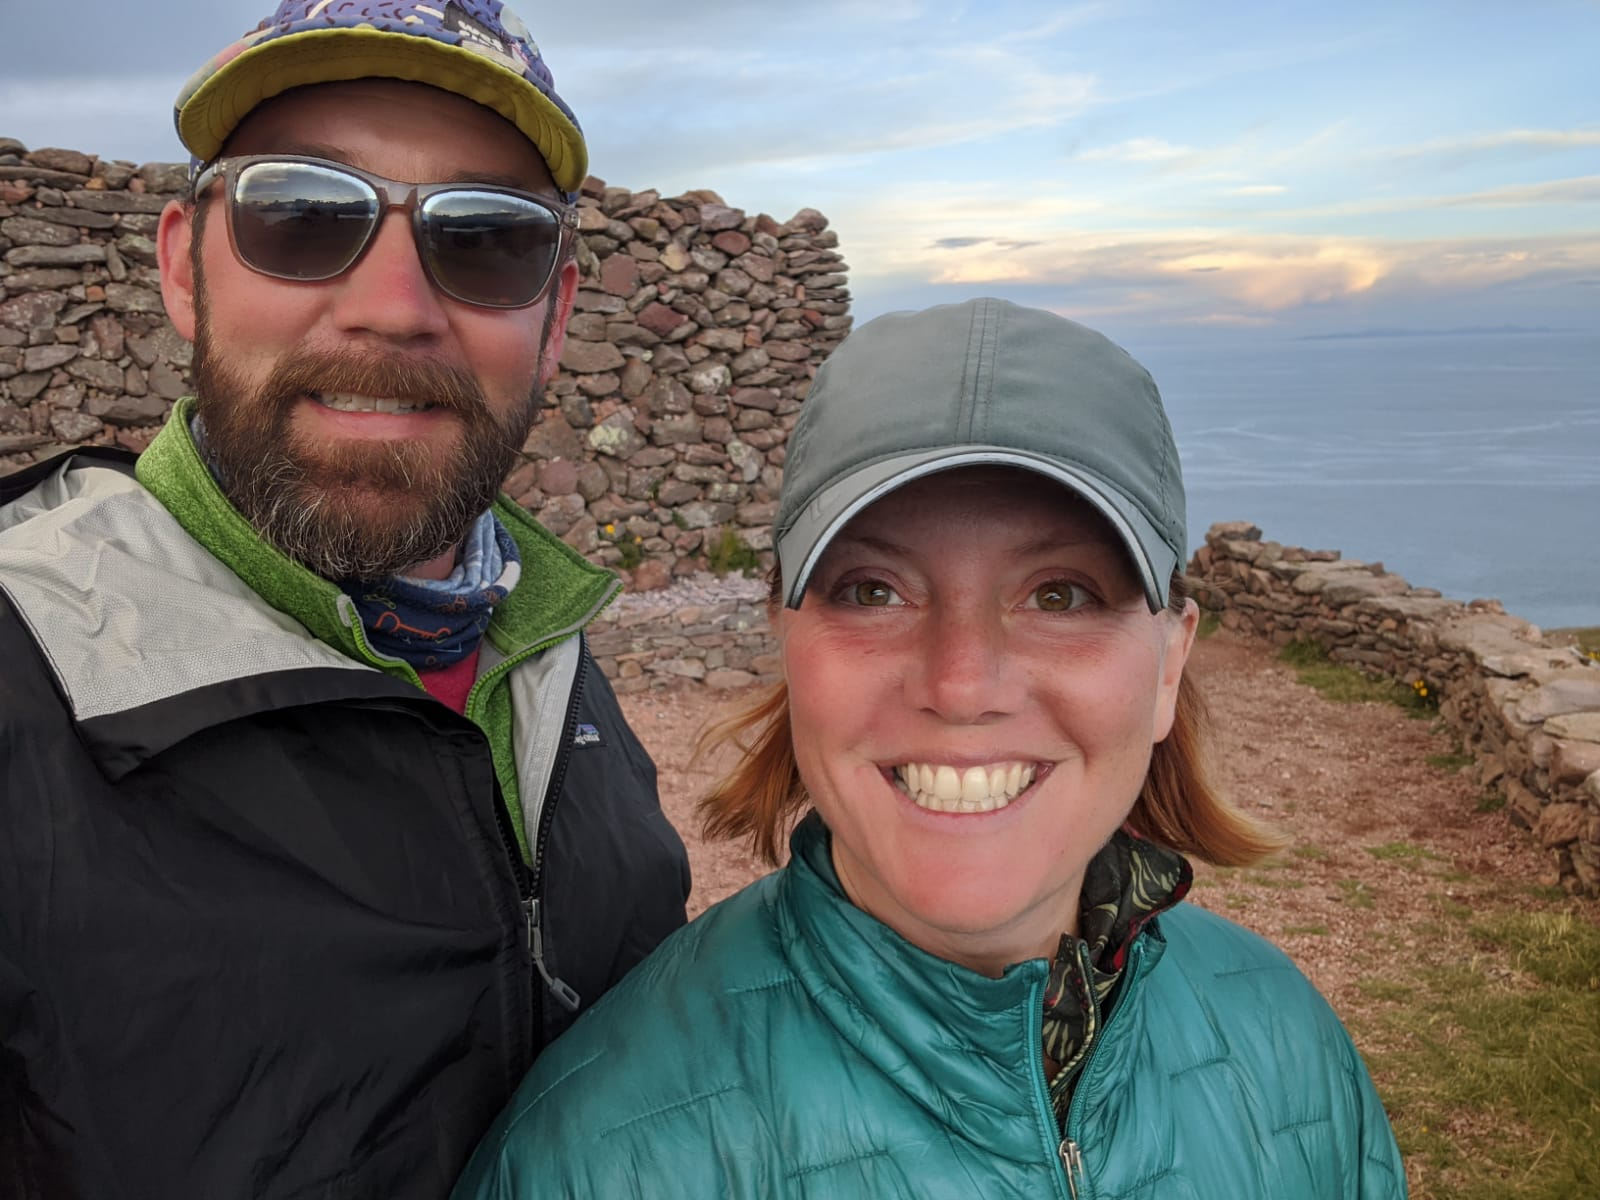 Melissa and Reuben Stugart got caught in the lockdown in Peru while on vacation. They say they plan to ride out the quarantine as best they can in Cusco.